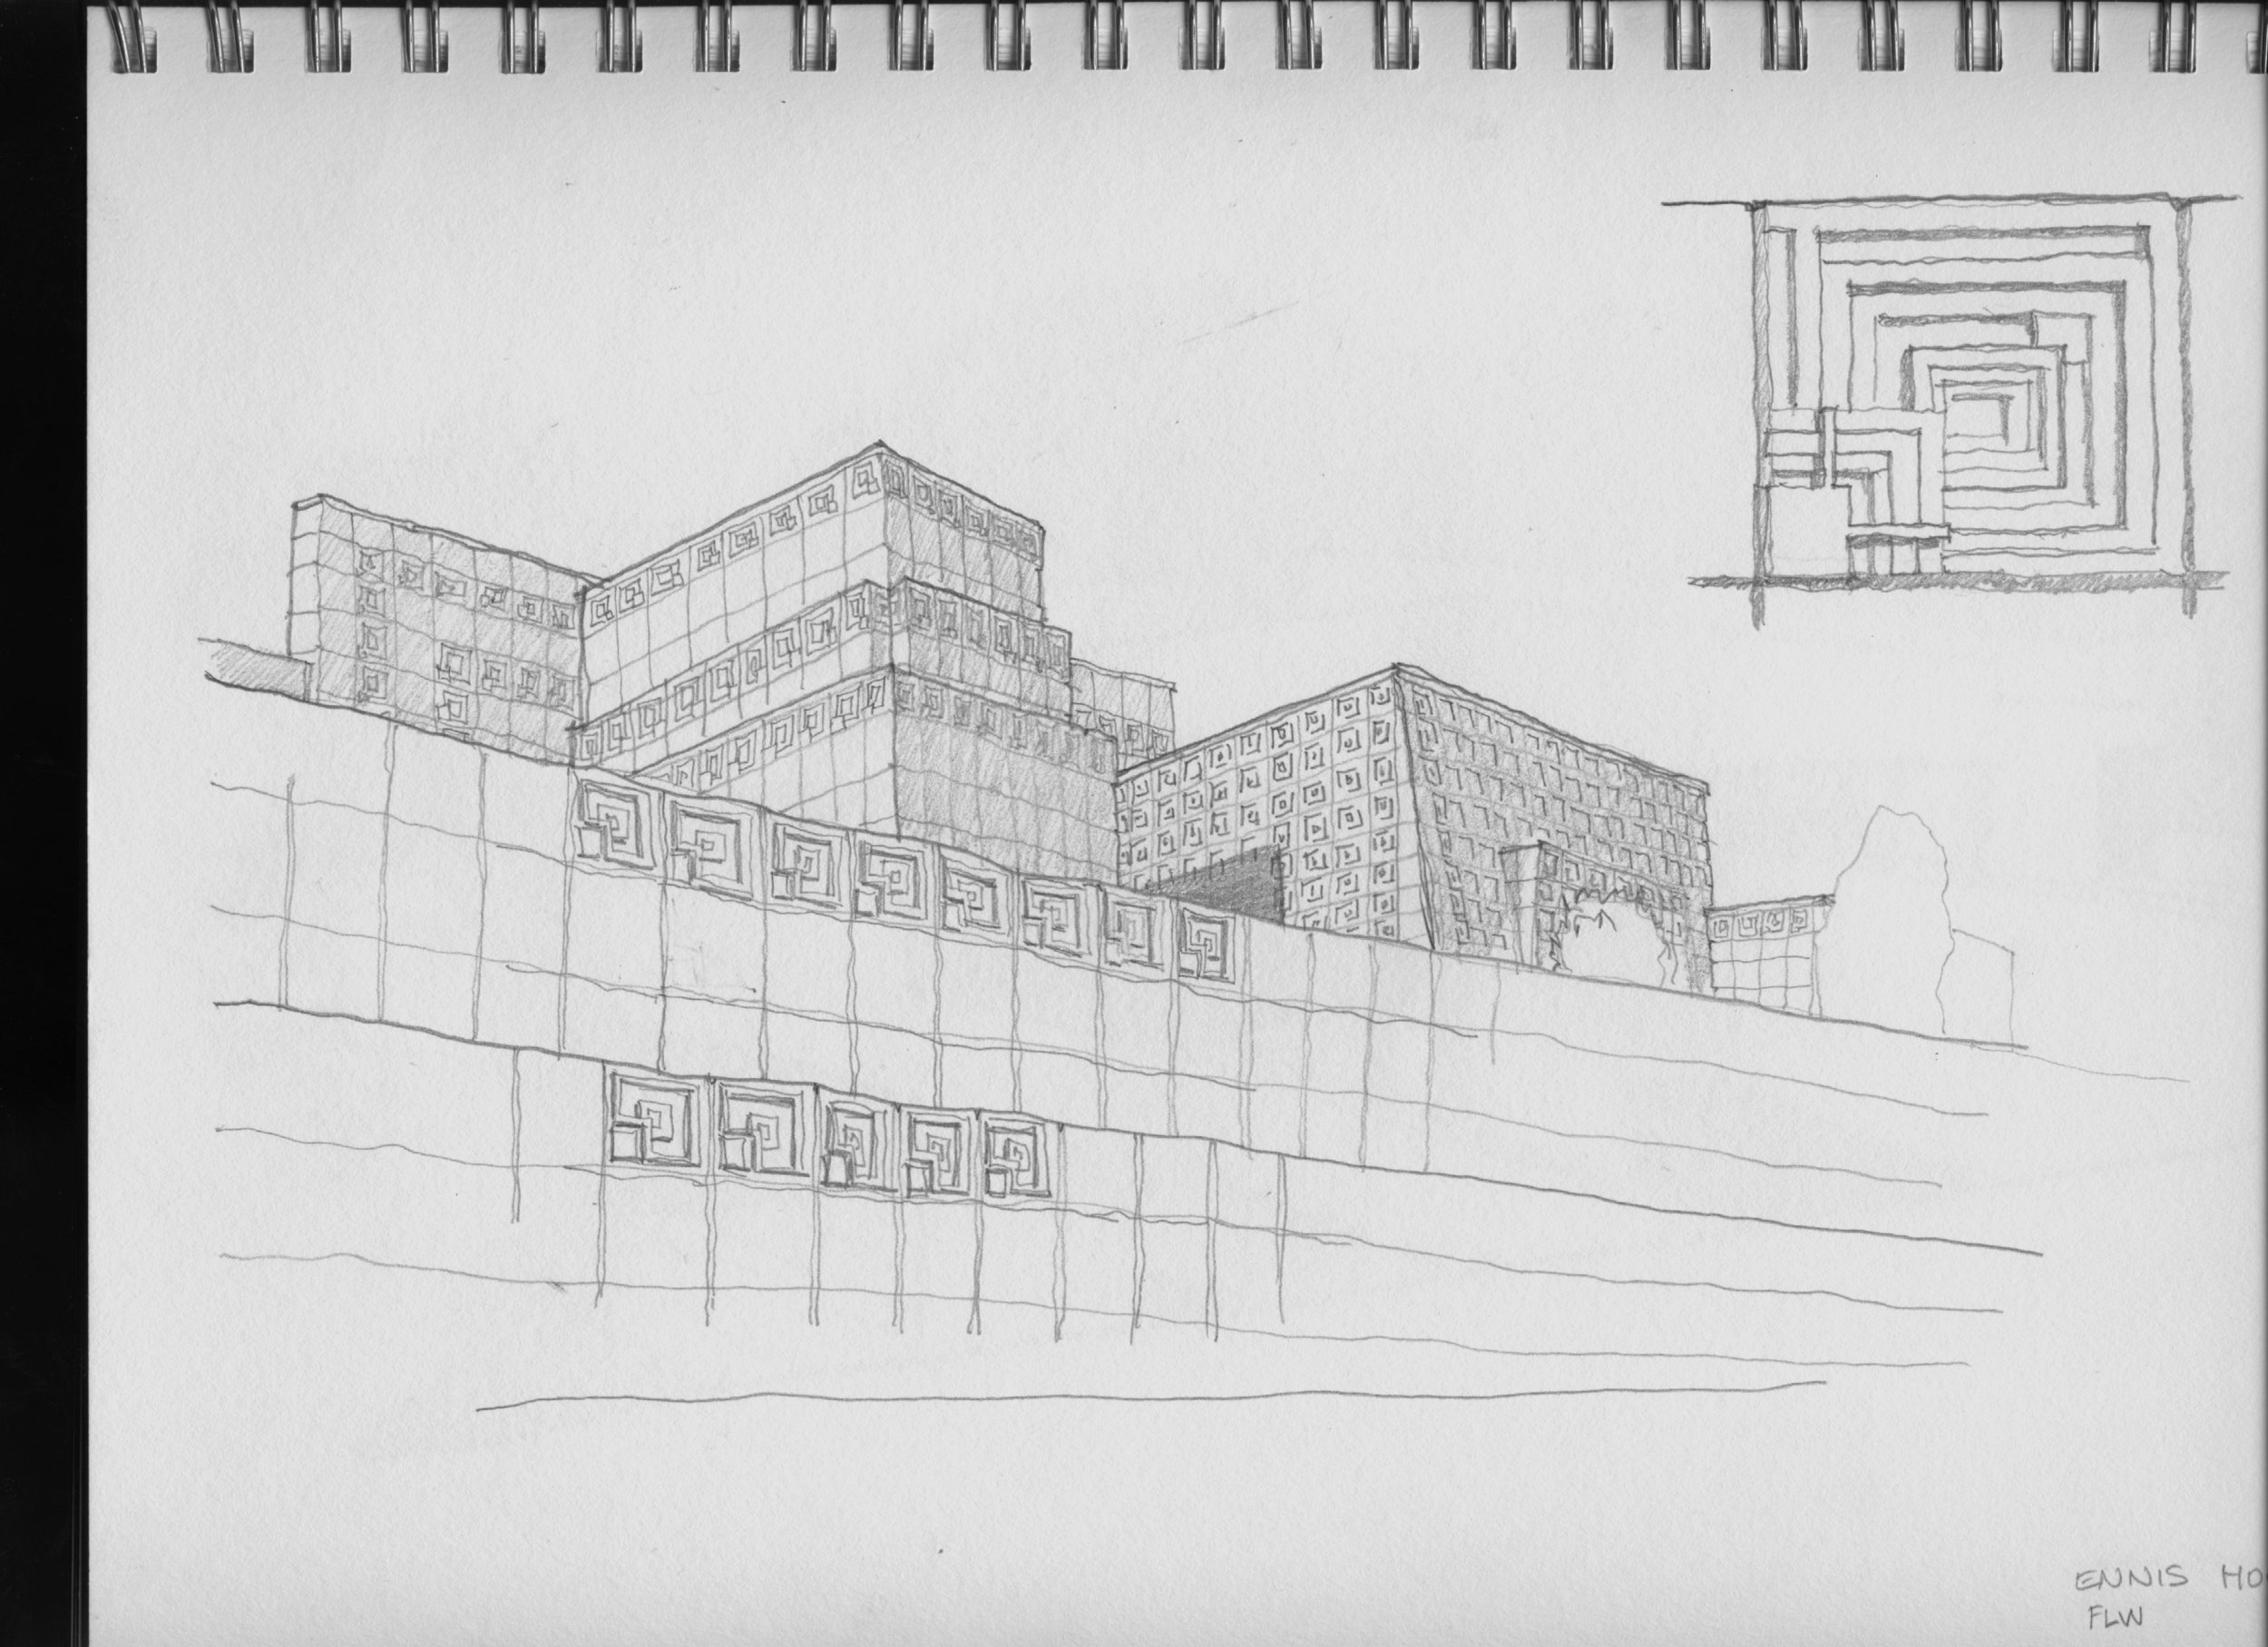 Ennis House sketch